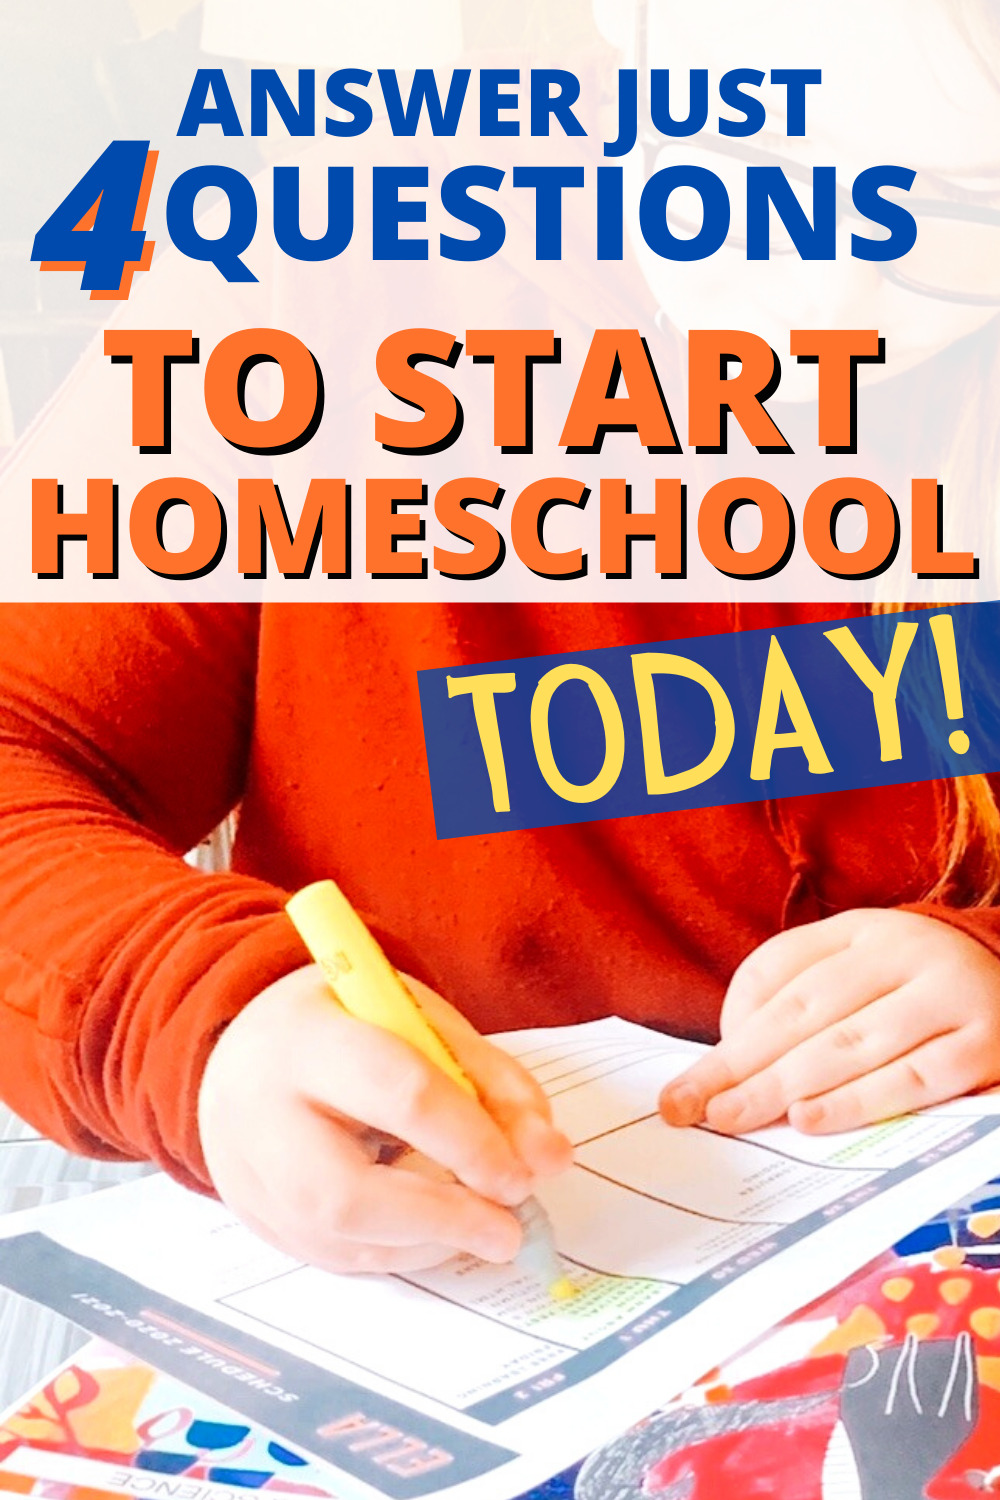 How To Prepare for Homeschooling